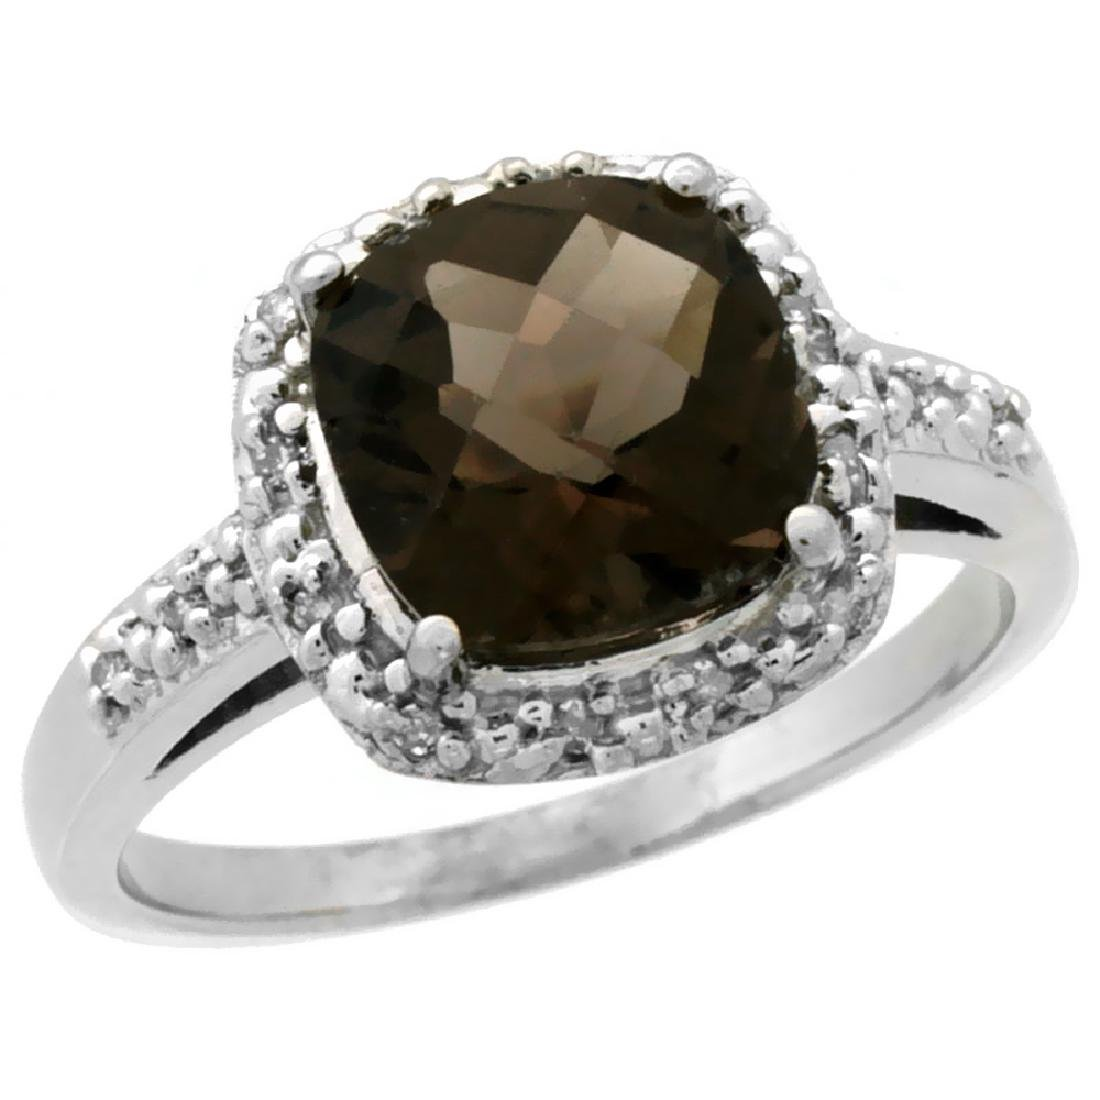 Natural 3.92 ctw Smoky-topaz & Diamond Engagement Ring